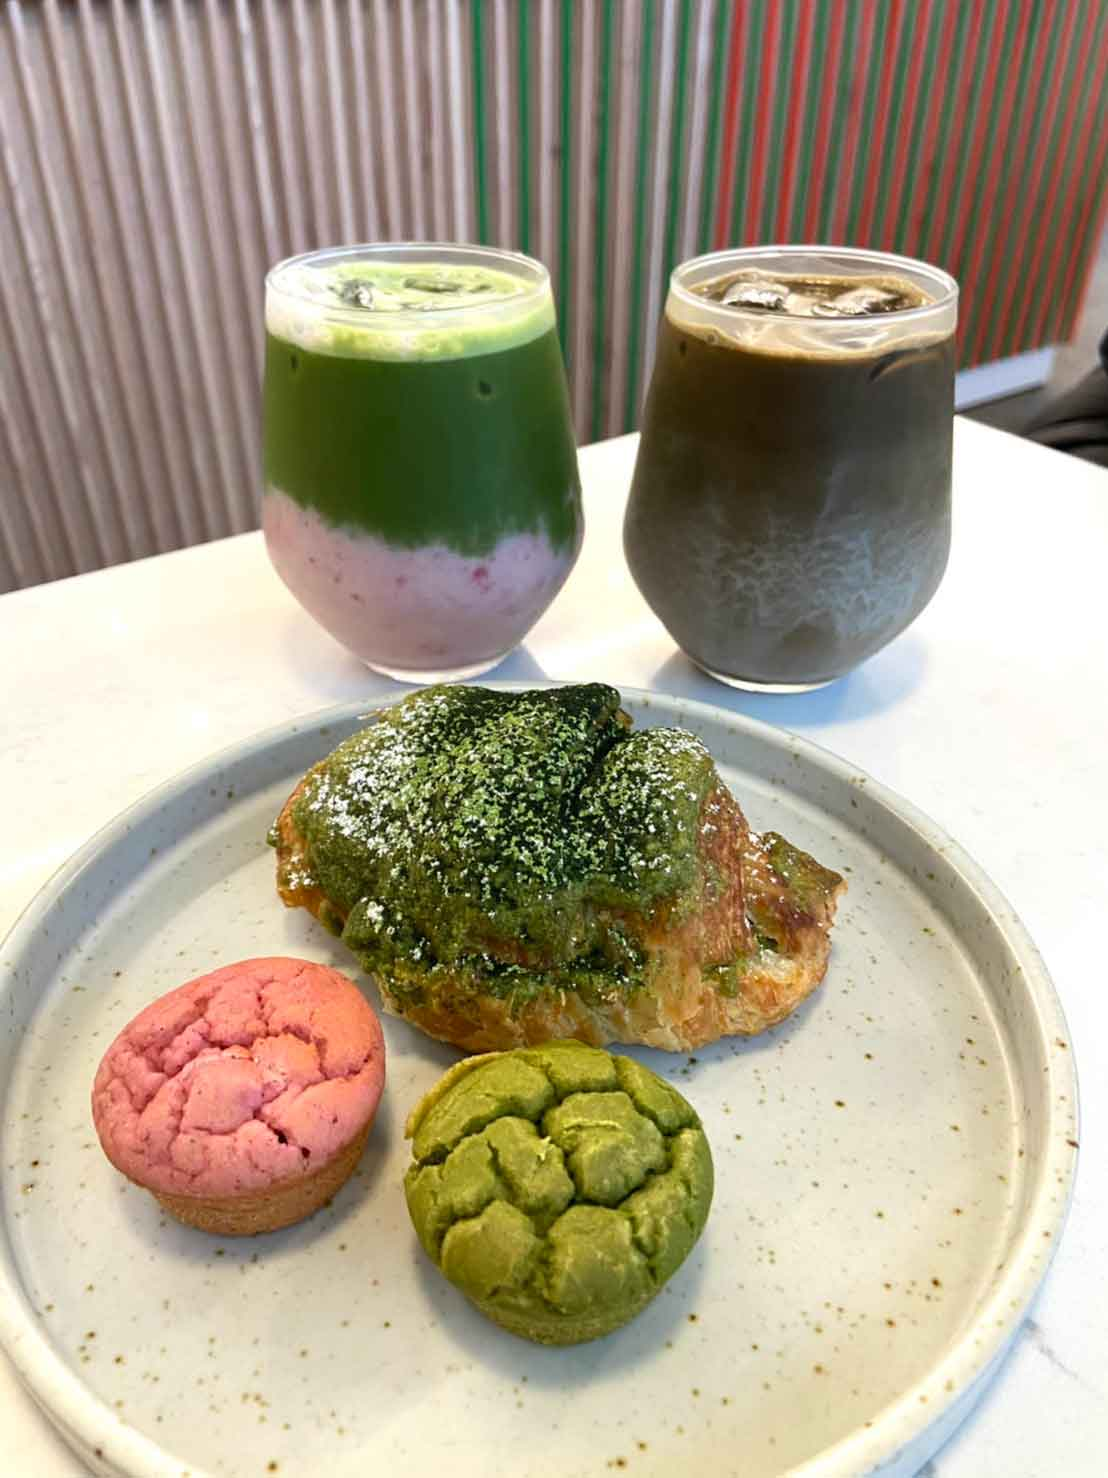 Iced Strawberry Matcha Latte, Iced Hojicha latte, Matcha croissant, Strawberry and Matcha mochi muffin